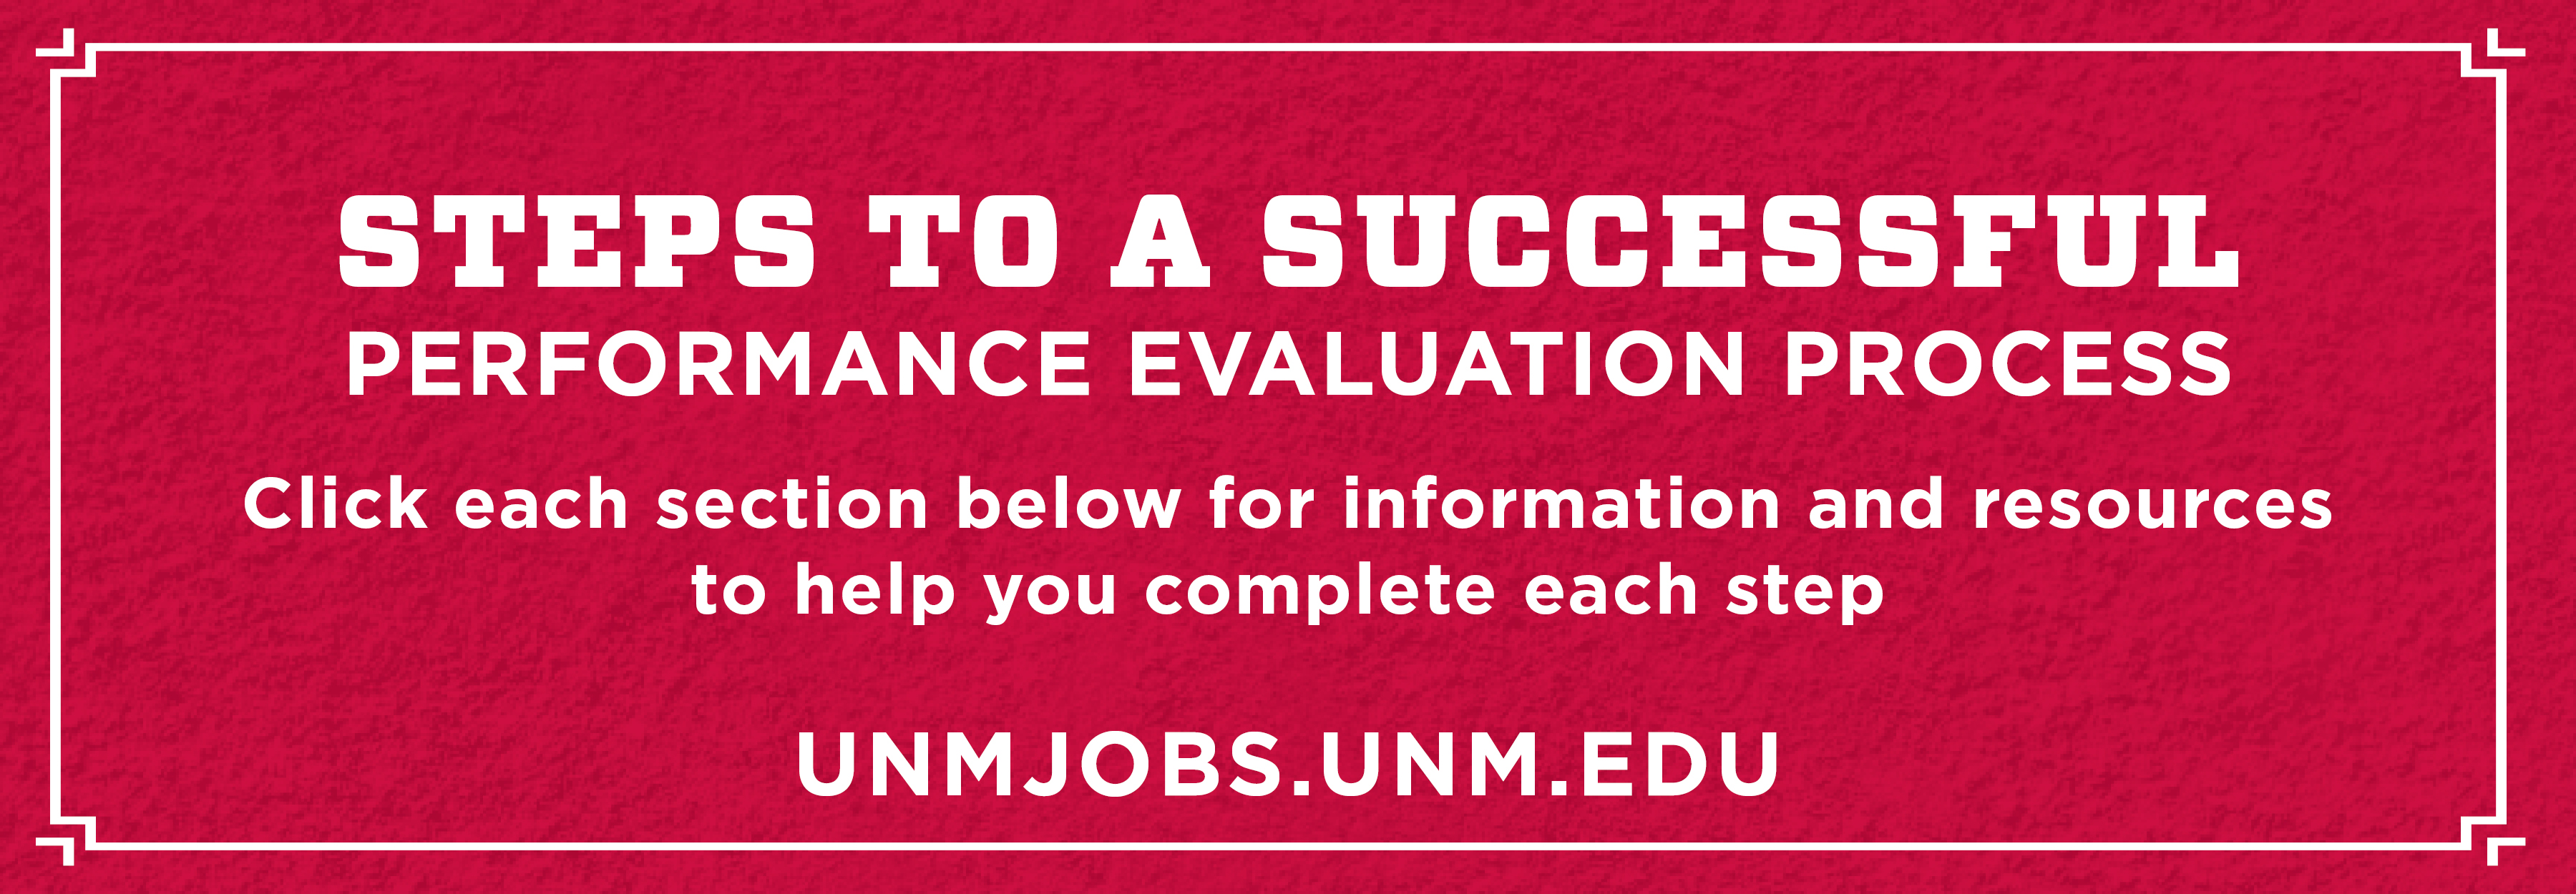 Steps to a Successful Performance Evaluation Process